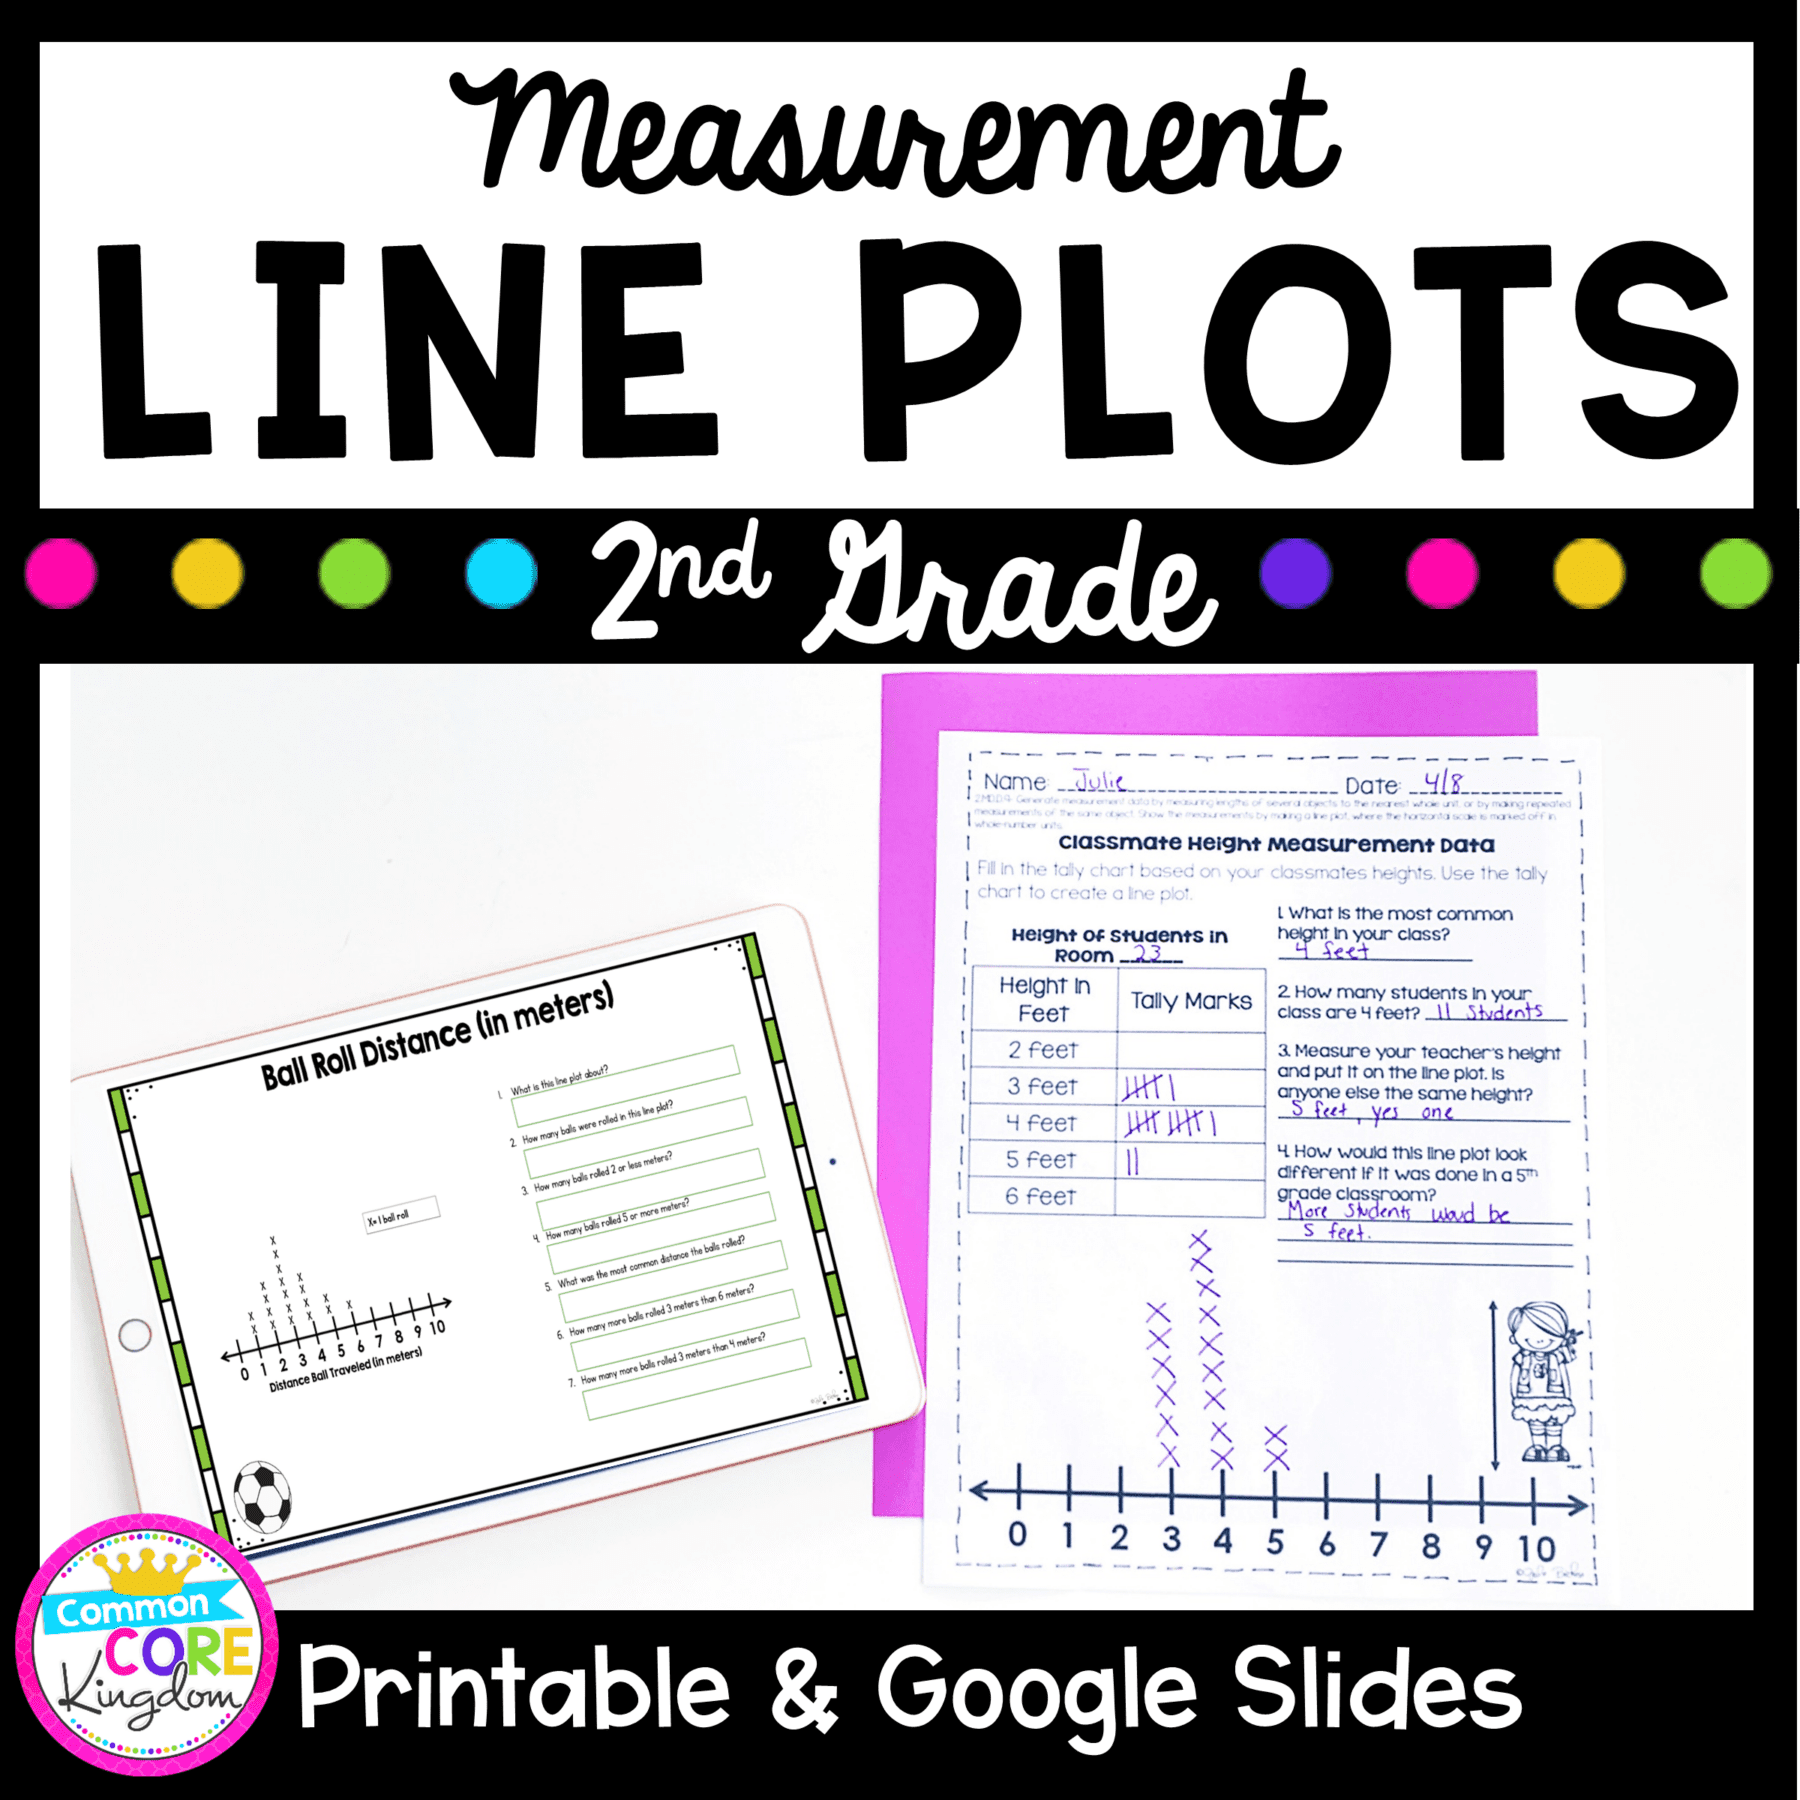 Line Plots \u0026 Measurement Data- 2nd Grade 2.MD.D.9 Google Slides Distance  Learning Pack   Common Core Kingdom [ 1800 x 1800 Pixel ]